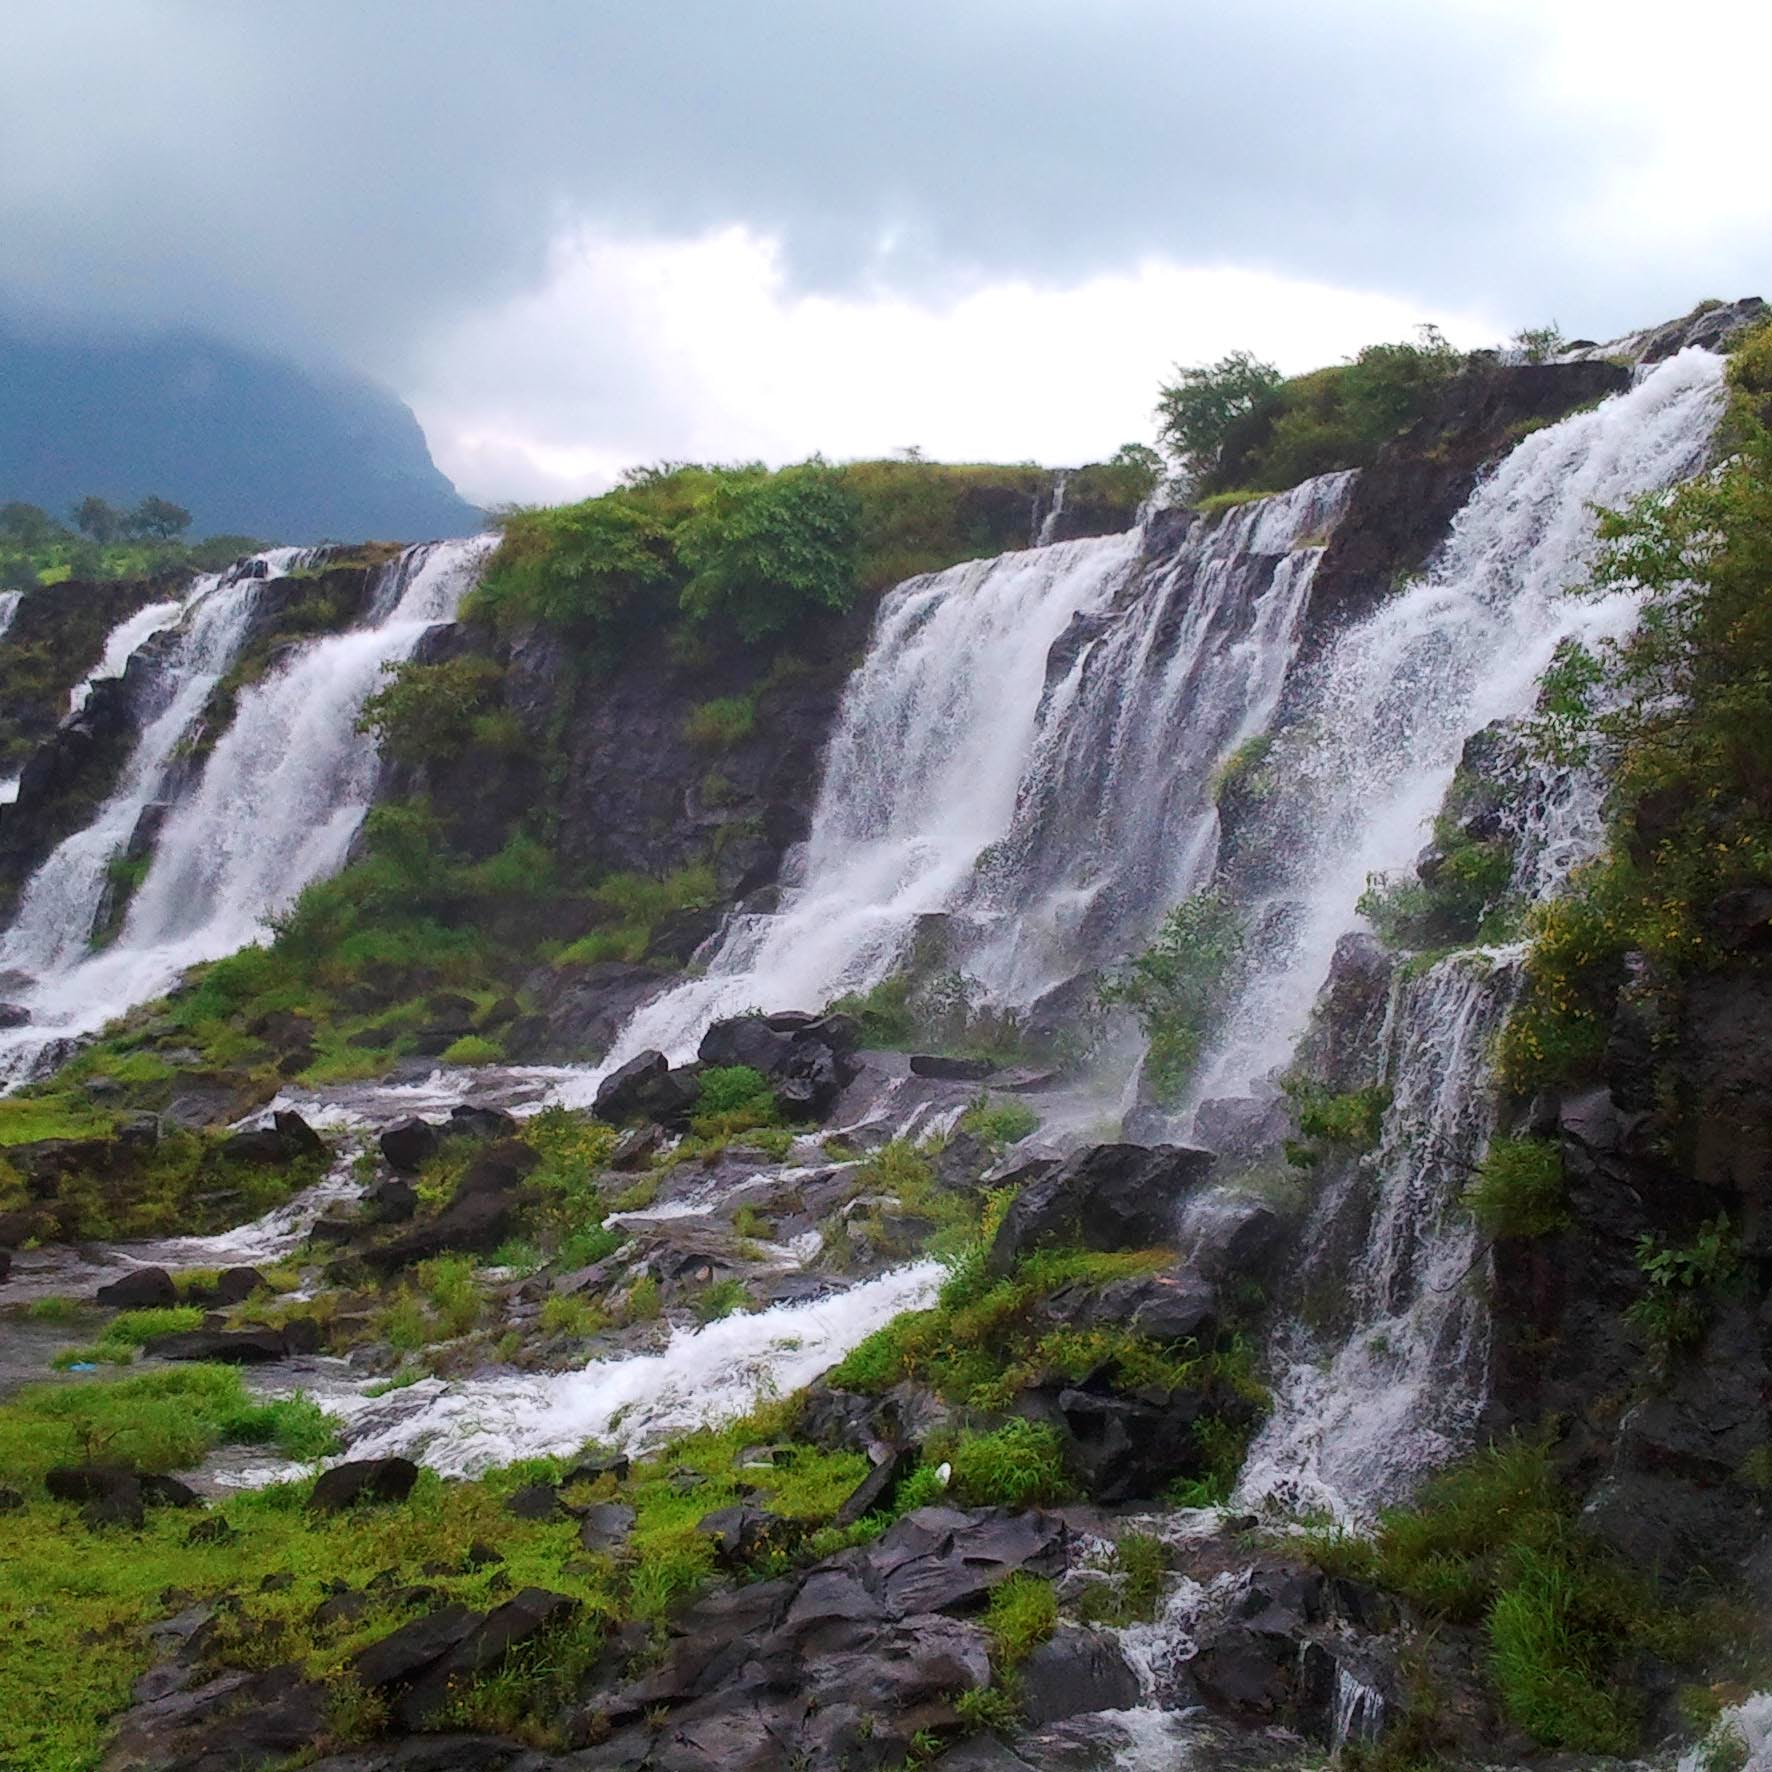 Waterfall,Water resources,Body of water,Natural landscape,Nature,Water,Watercourse,Nature reserve,Vegetation,Chute